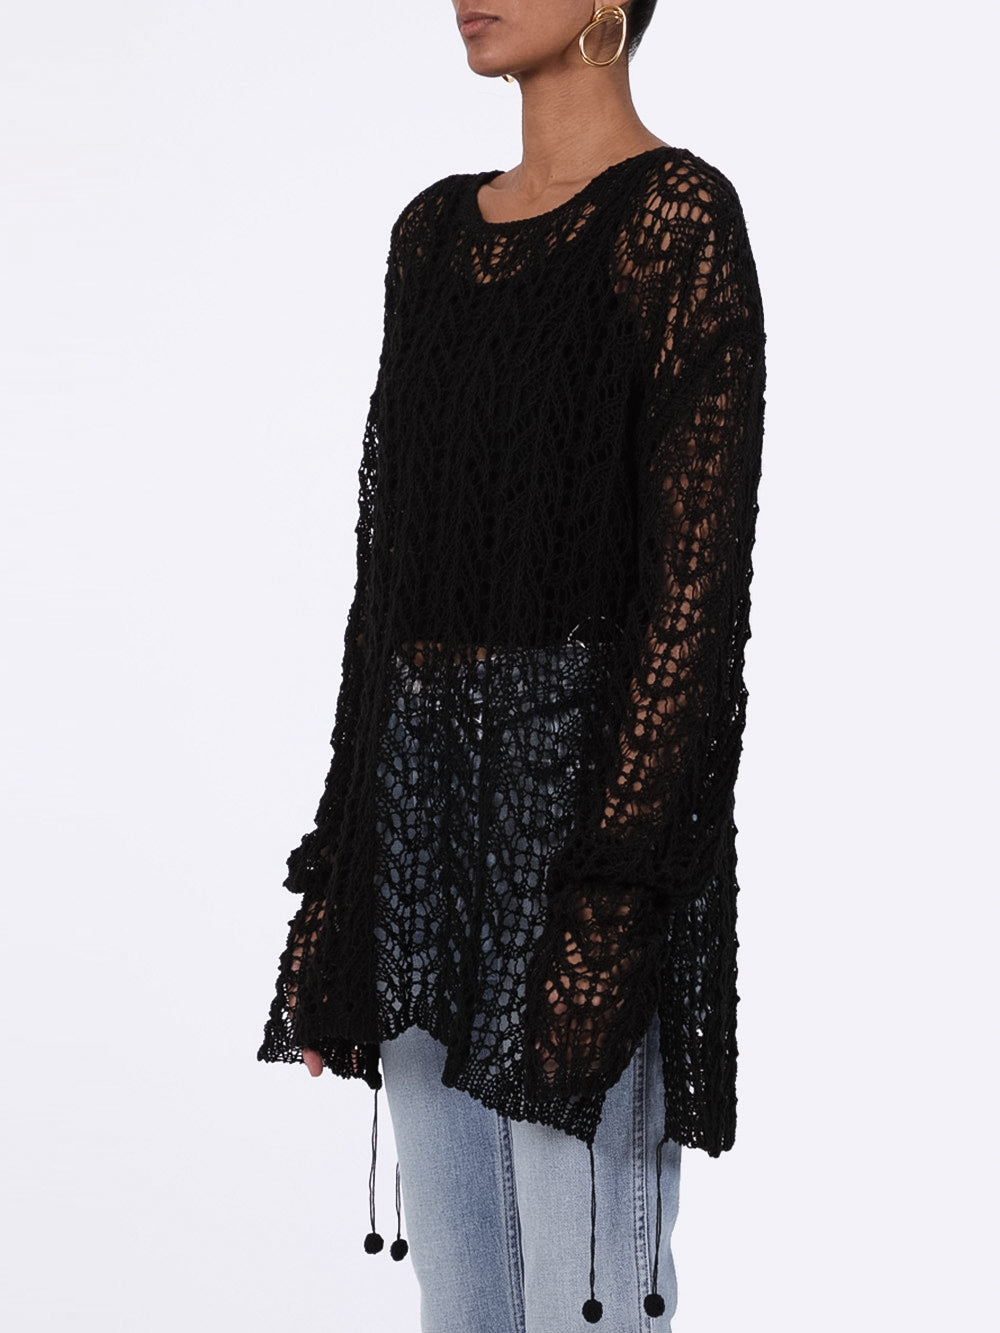 Black Crochet Sweater